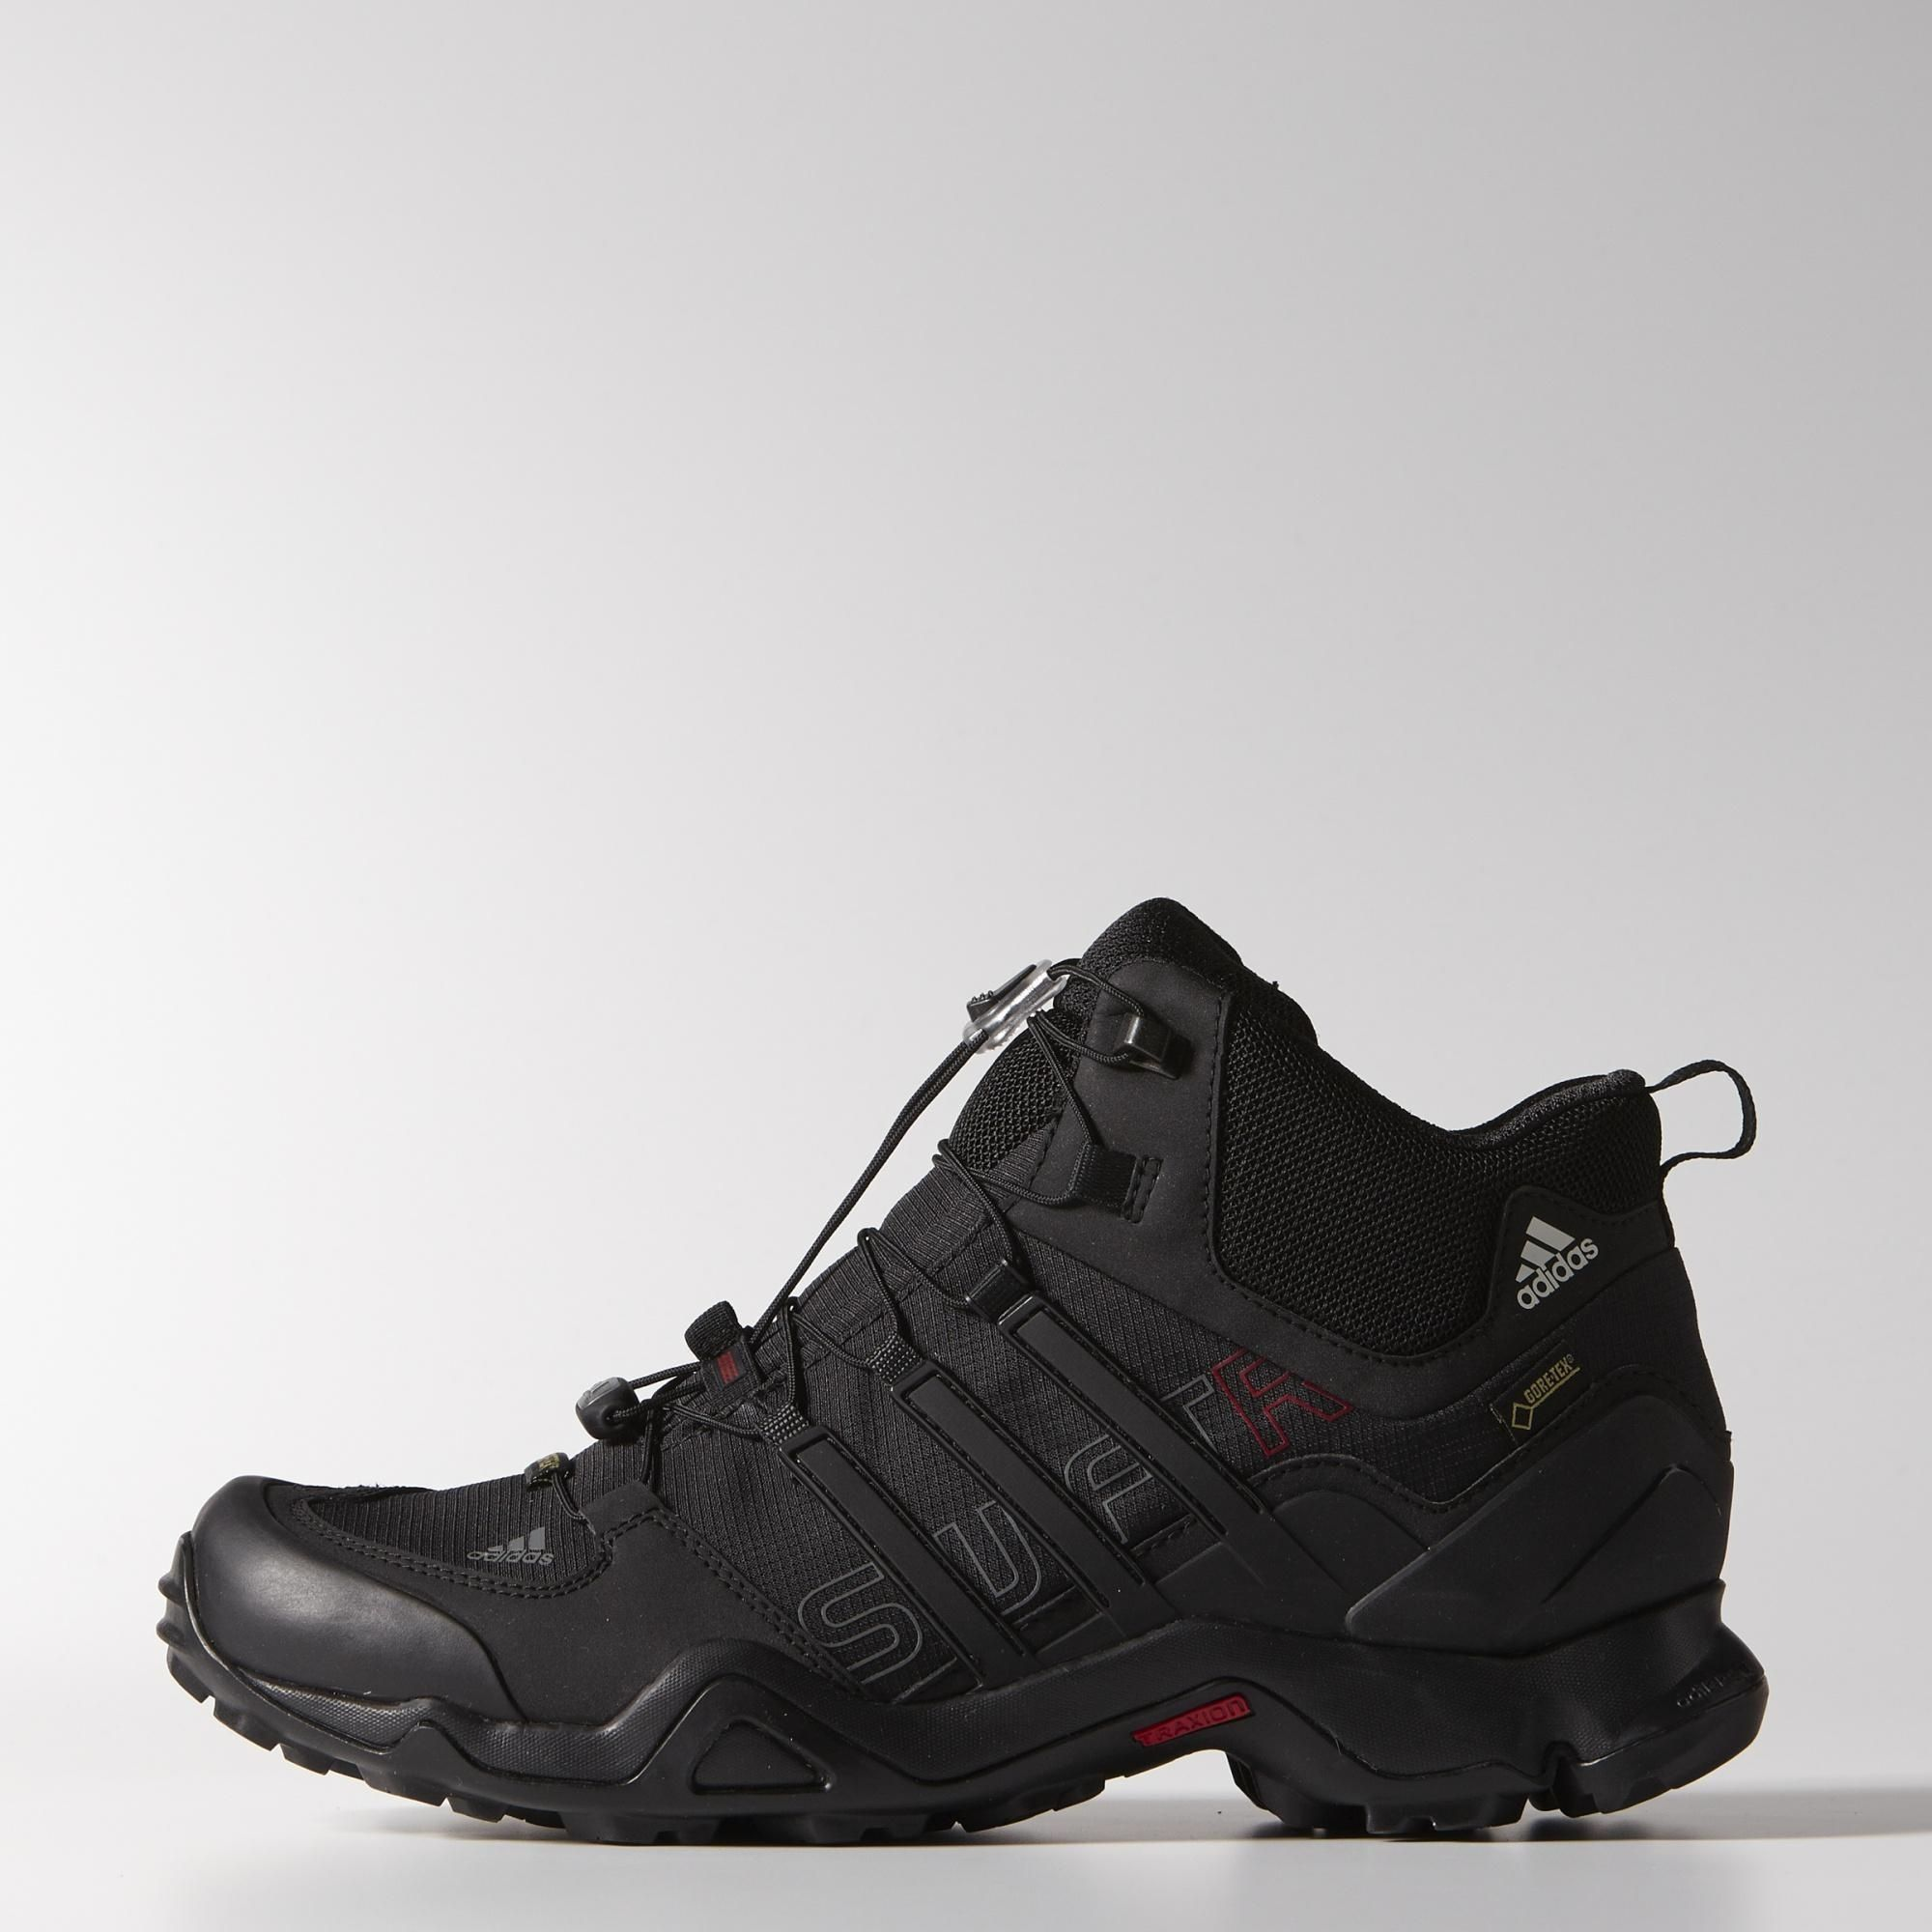 outlet store ae0f7 1c62d Zapatillas de Outdoor Terrex Swift R Mid GTX adidas  adidas Chile